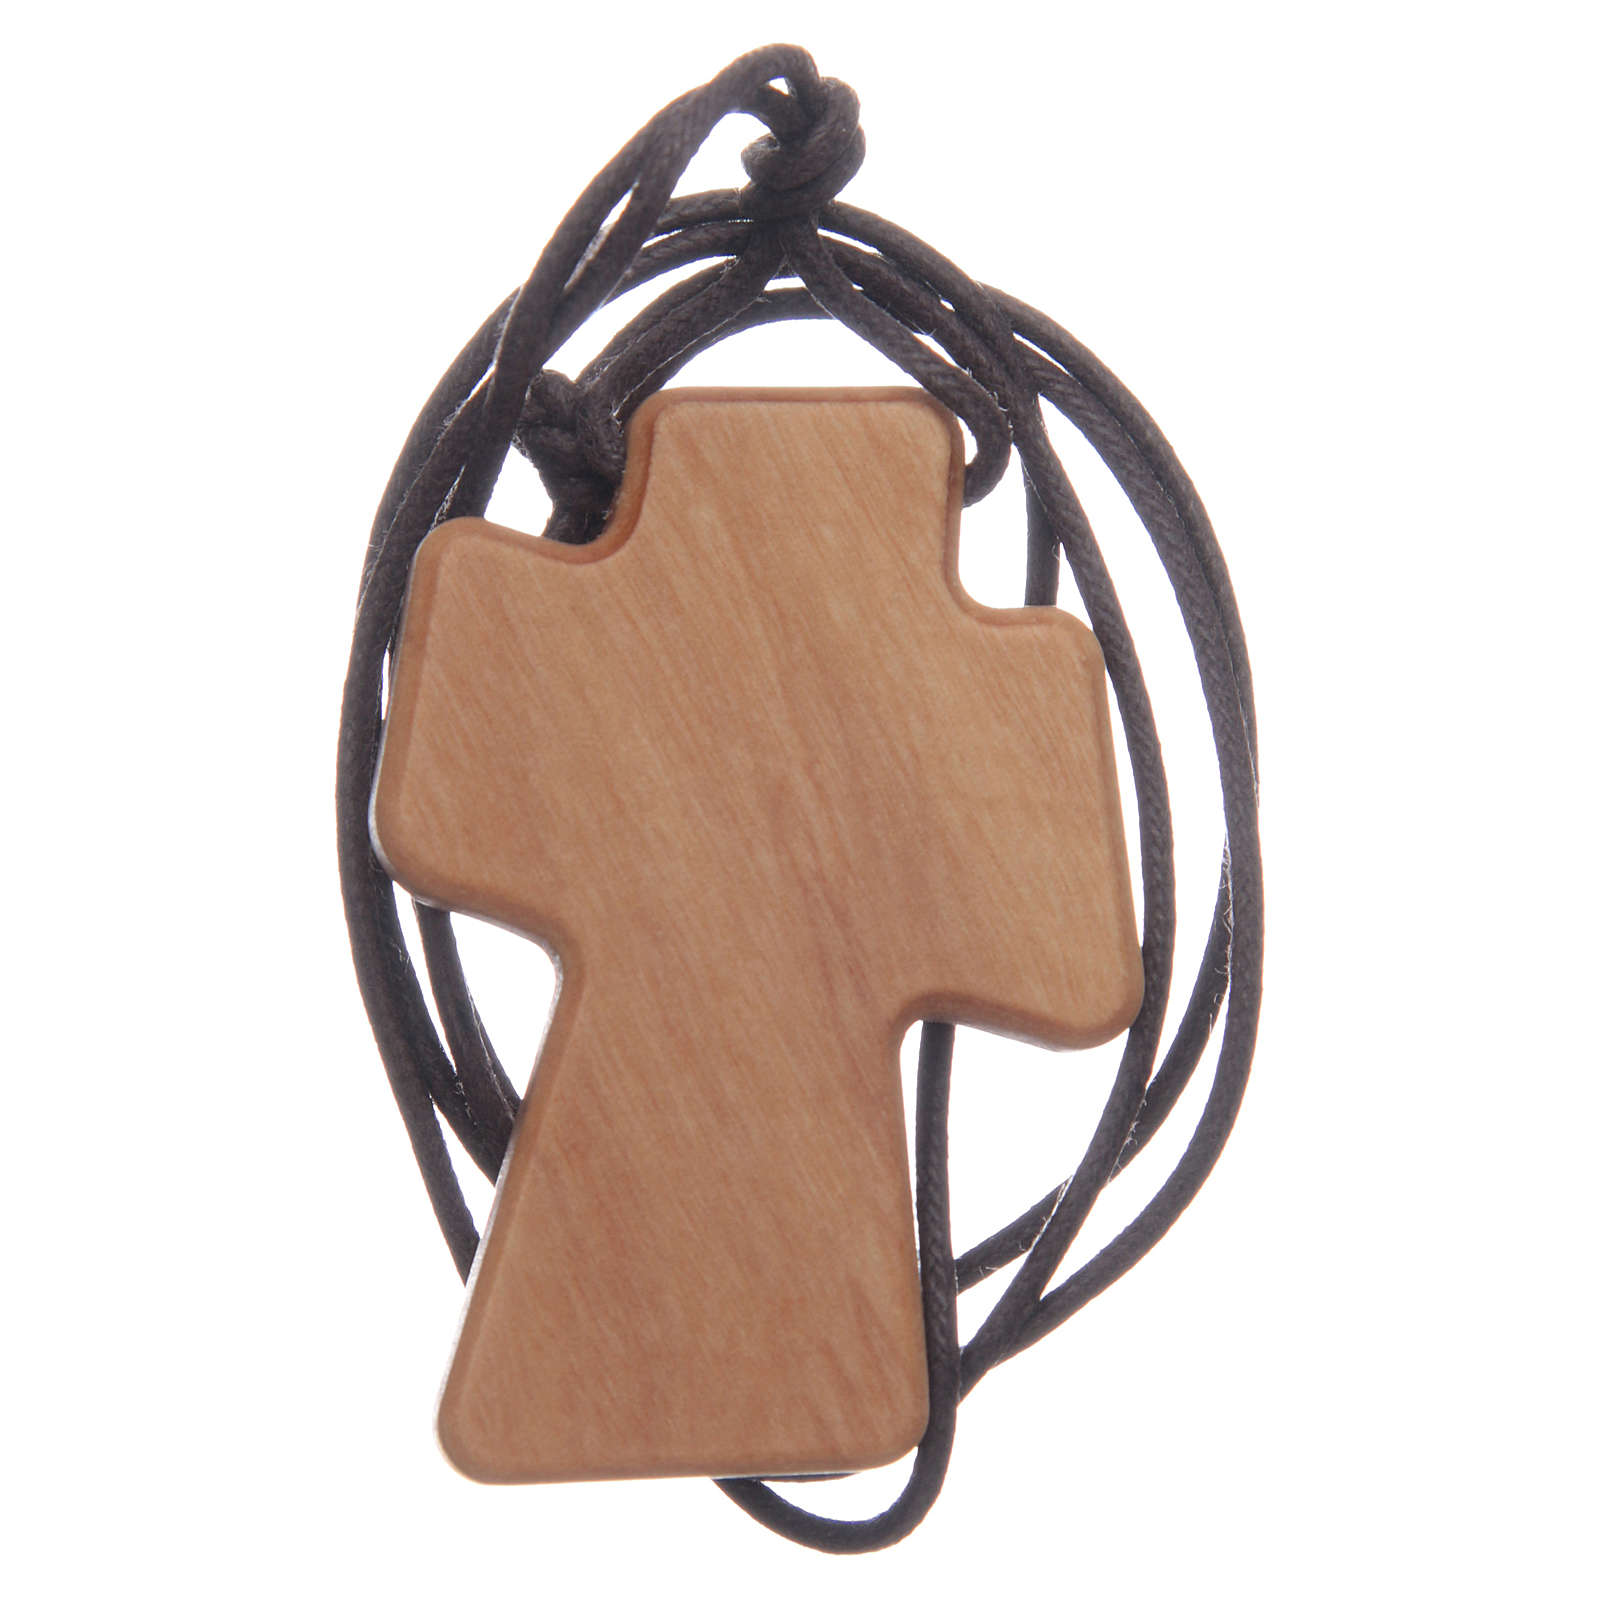 Cruz madera olivo relieve 5 cm 4